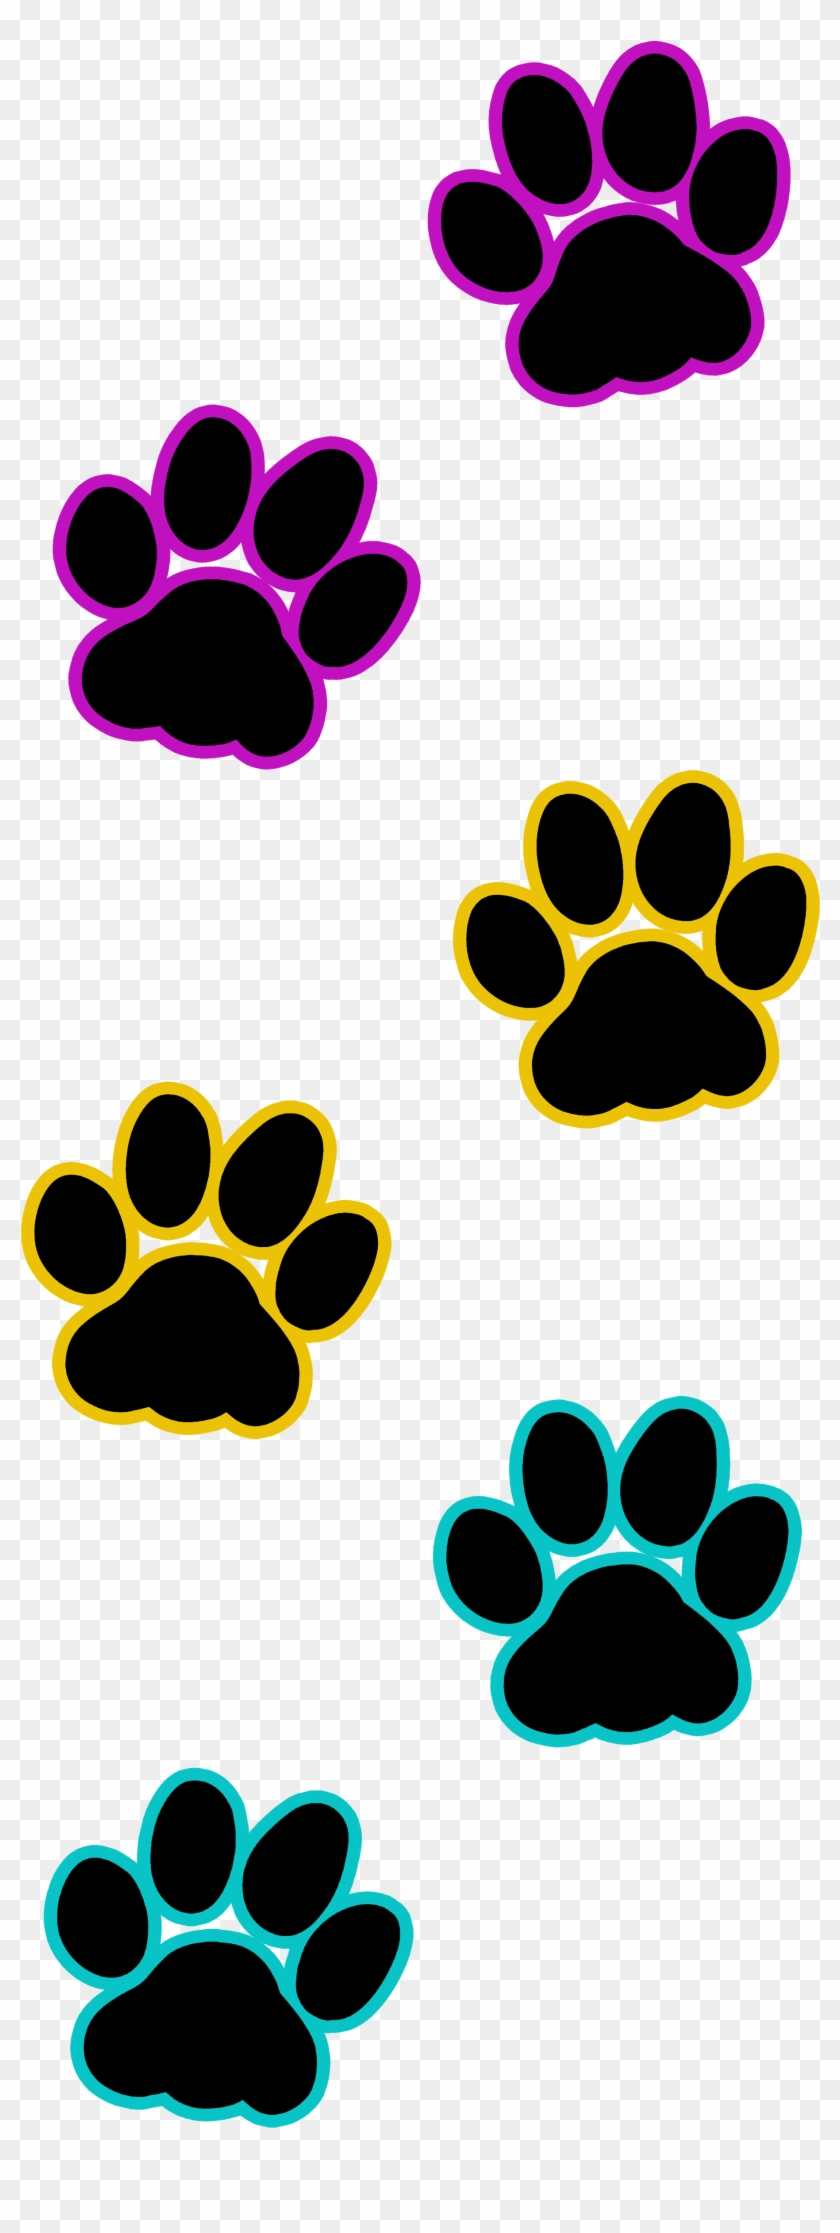 Kitten Paw Print Png – Also, find more png clipart about symbol clipart,kitty clipart,clipart symbol kitty background kitten animal cat silhouette animal print cats sale cat face skin car bone.